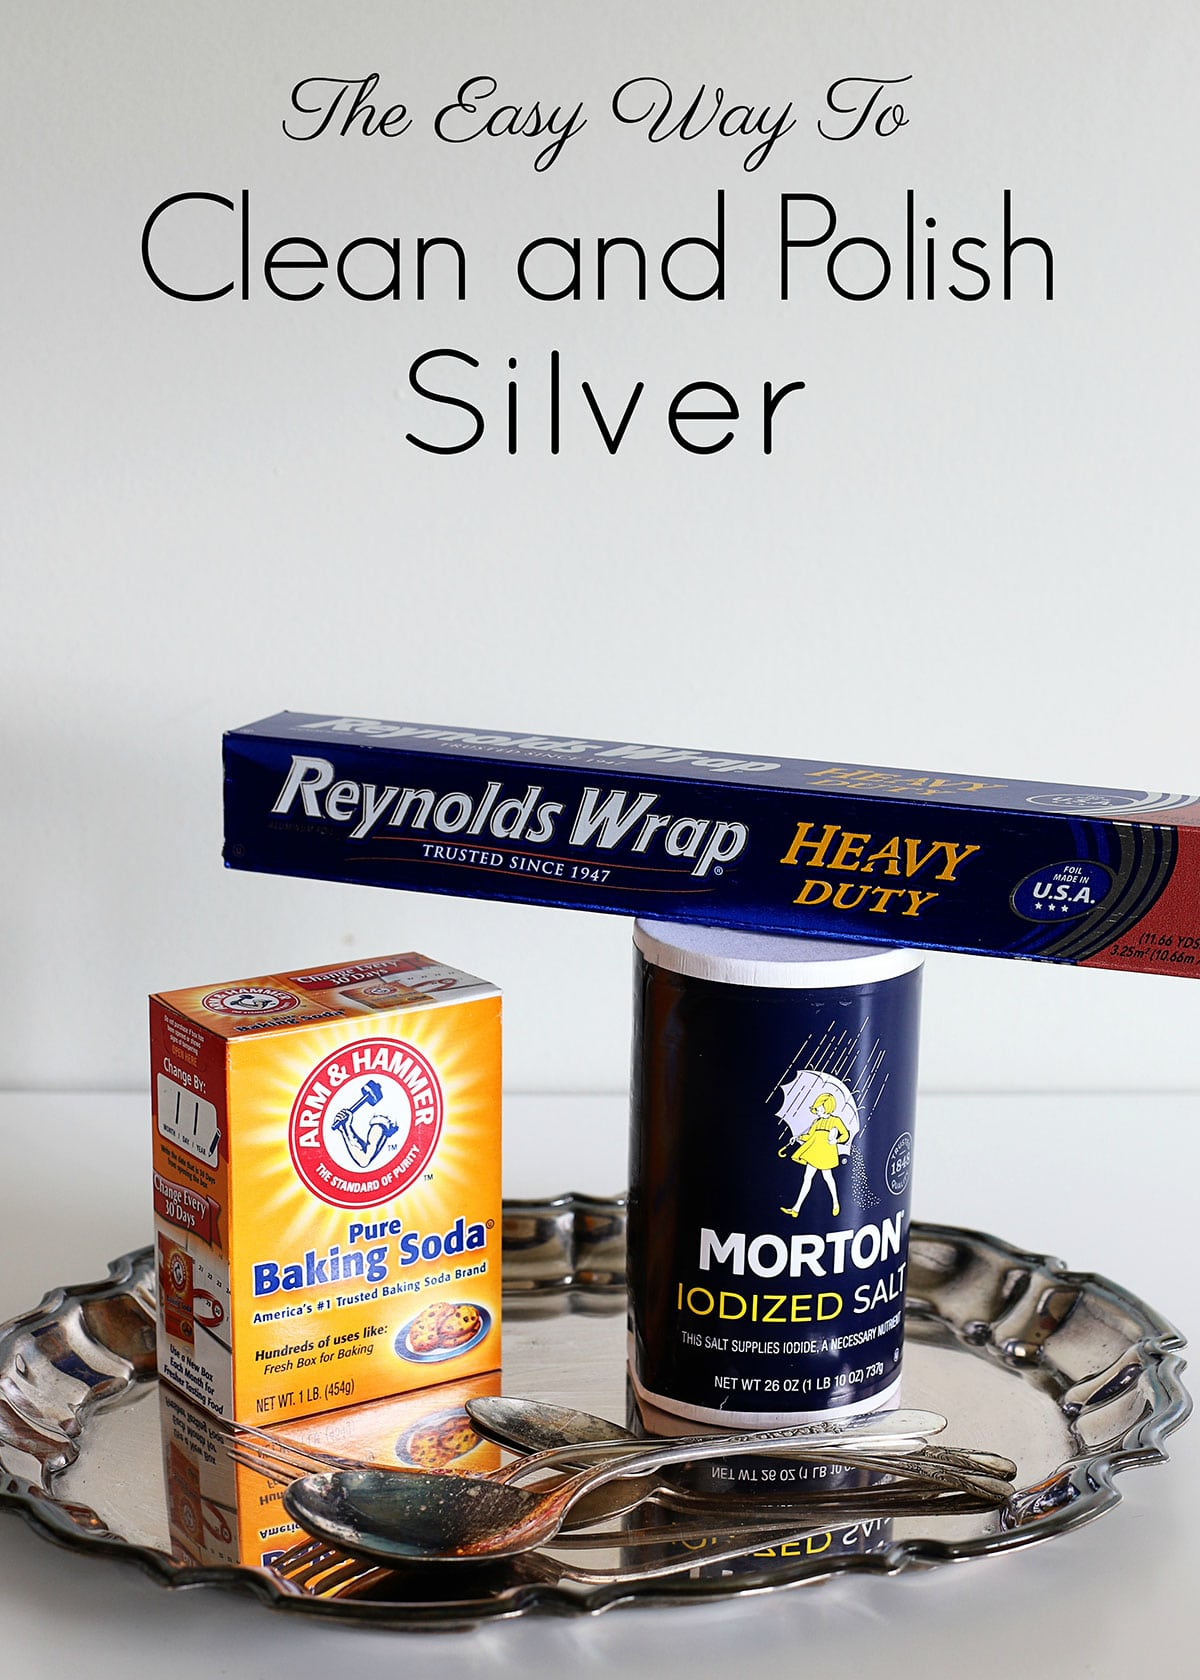 East way to clean and polish silver